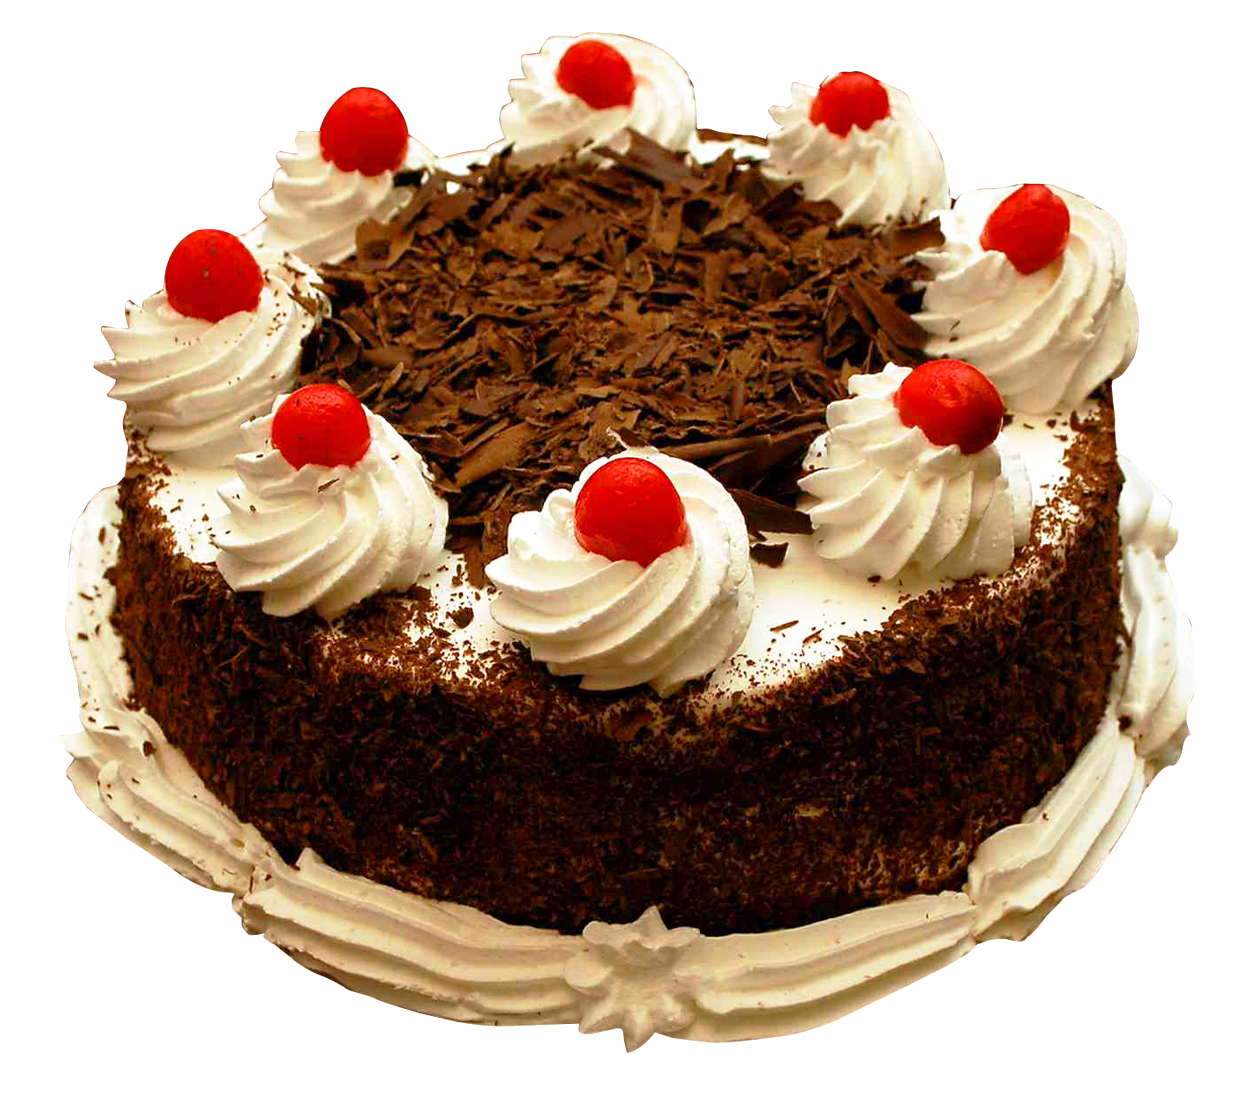 Birthday Cake Png Image For Free Download